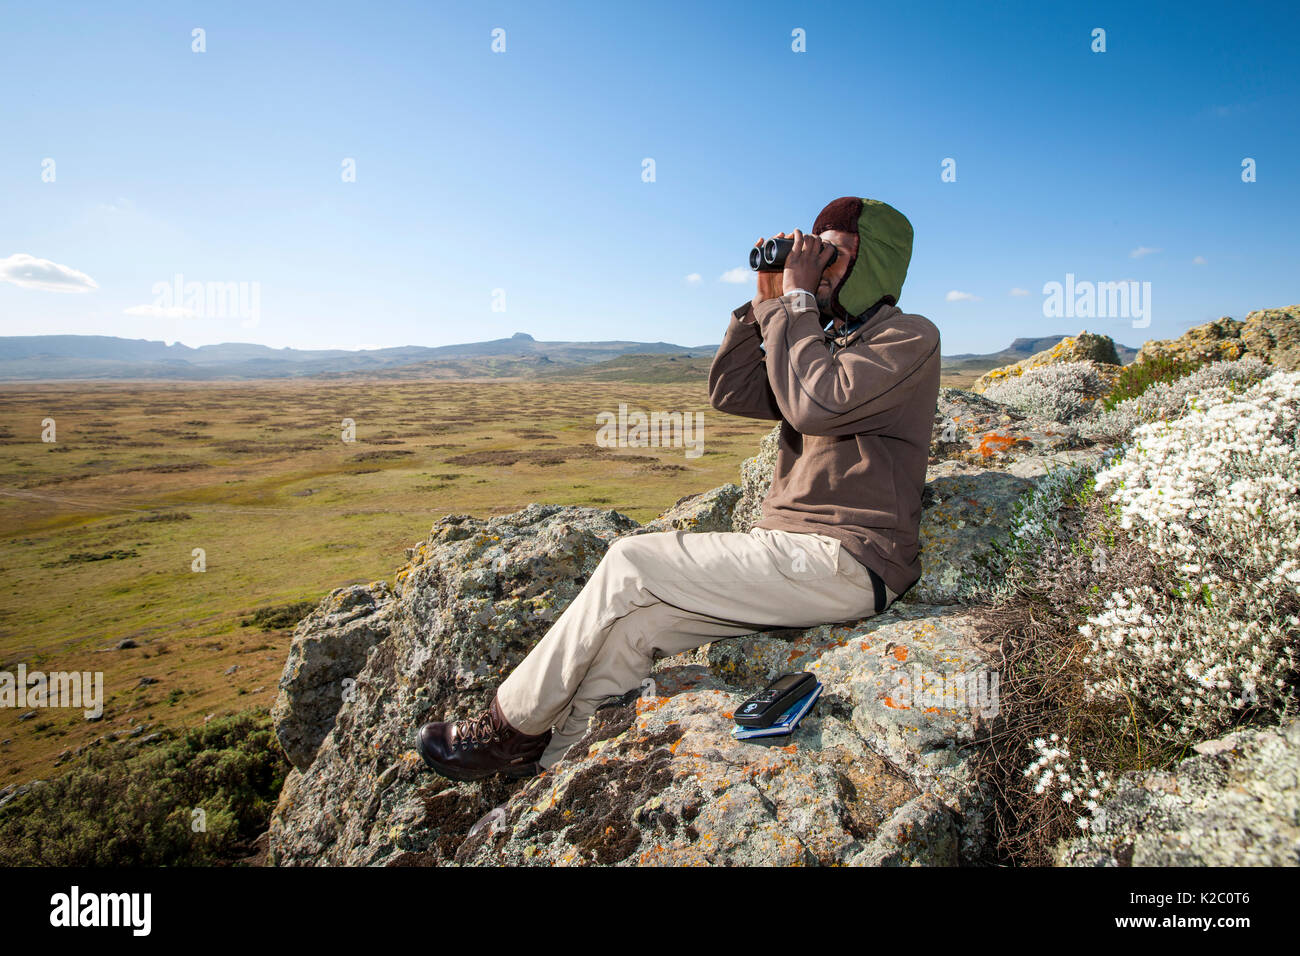 Ethiopian wolf conservation program (EWCP) monitor on the lookout for wolves, Ethiopia. November 2011. - Stock Image